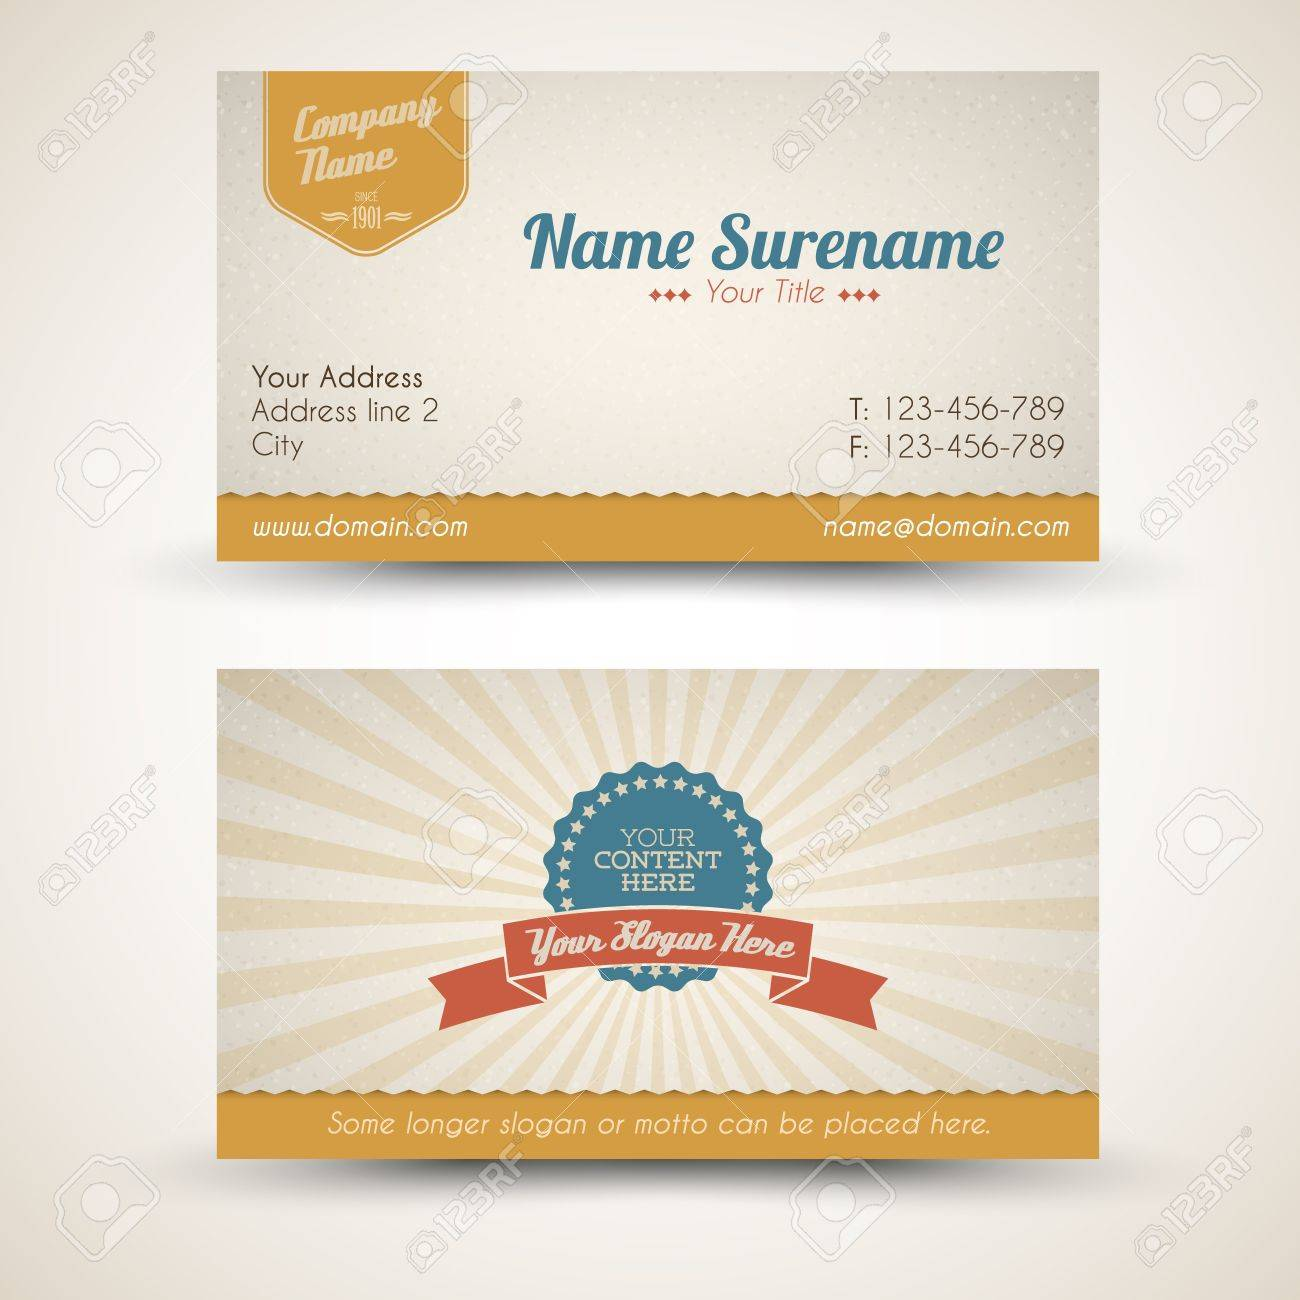 Old-style Retro Vintage Business Card Both Front And Back Side ...